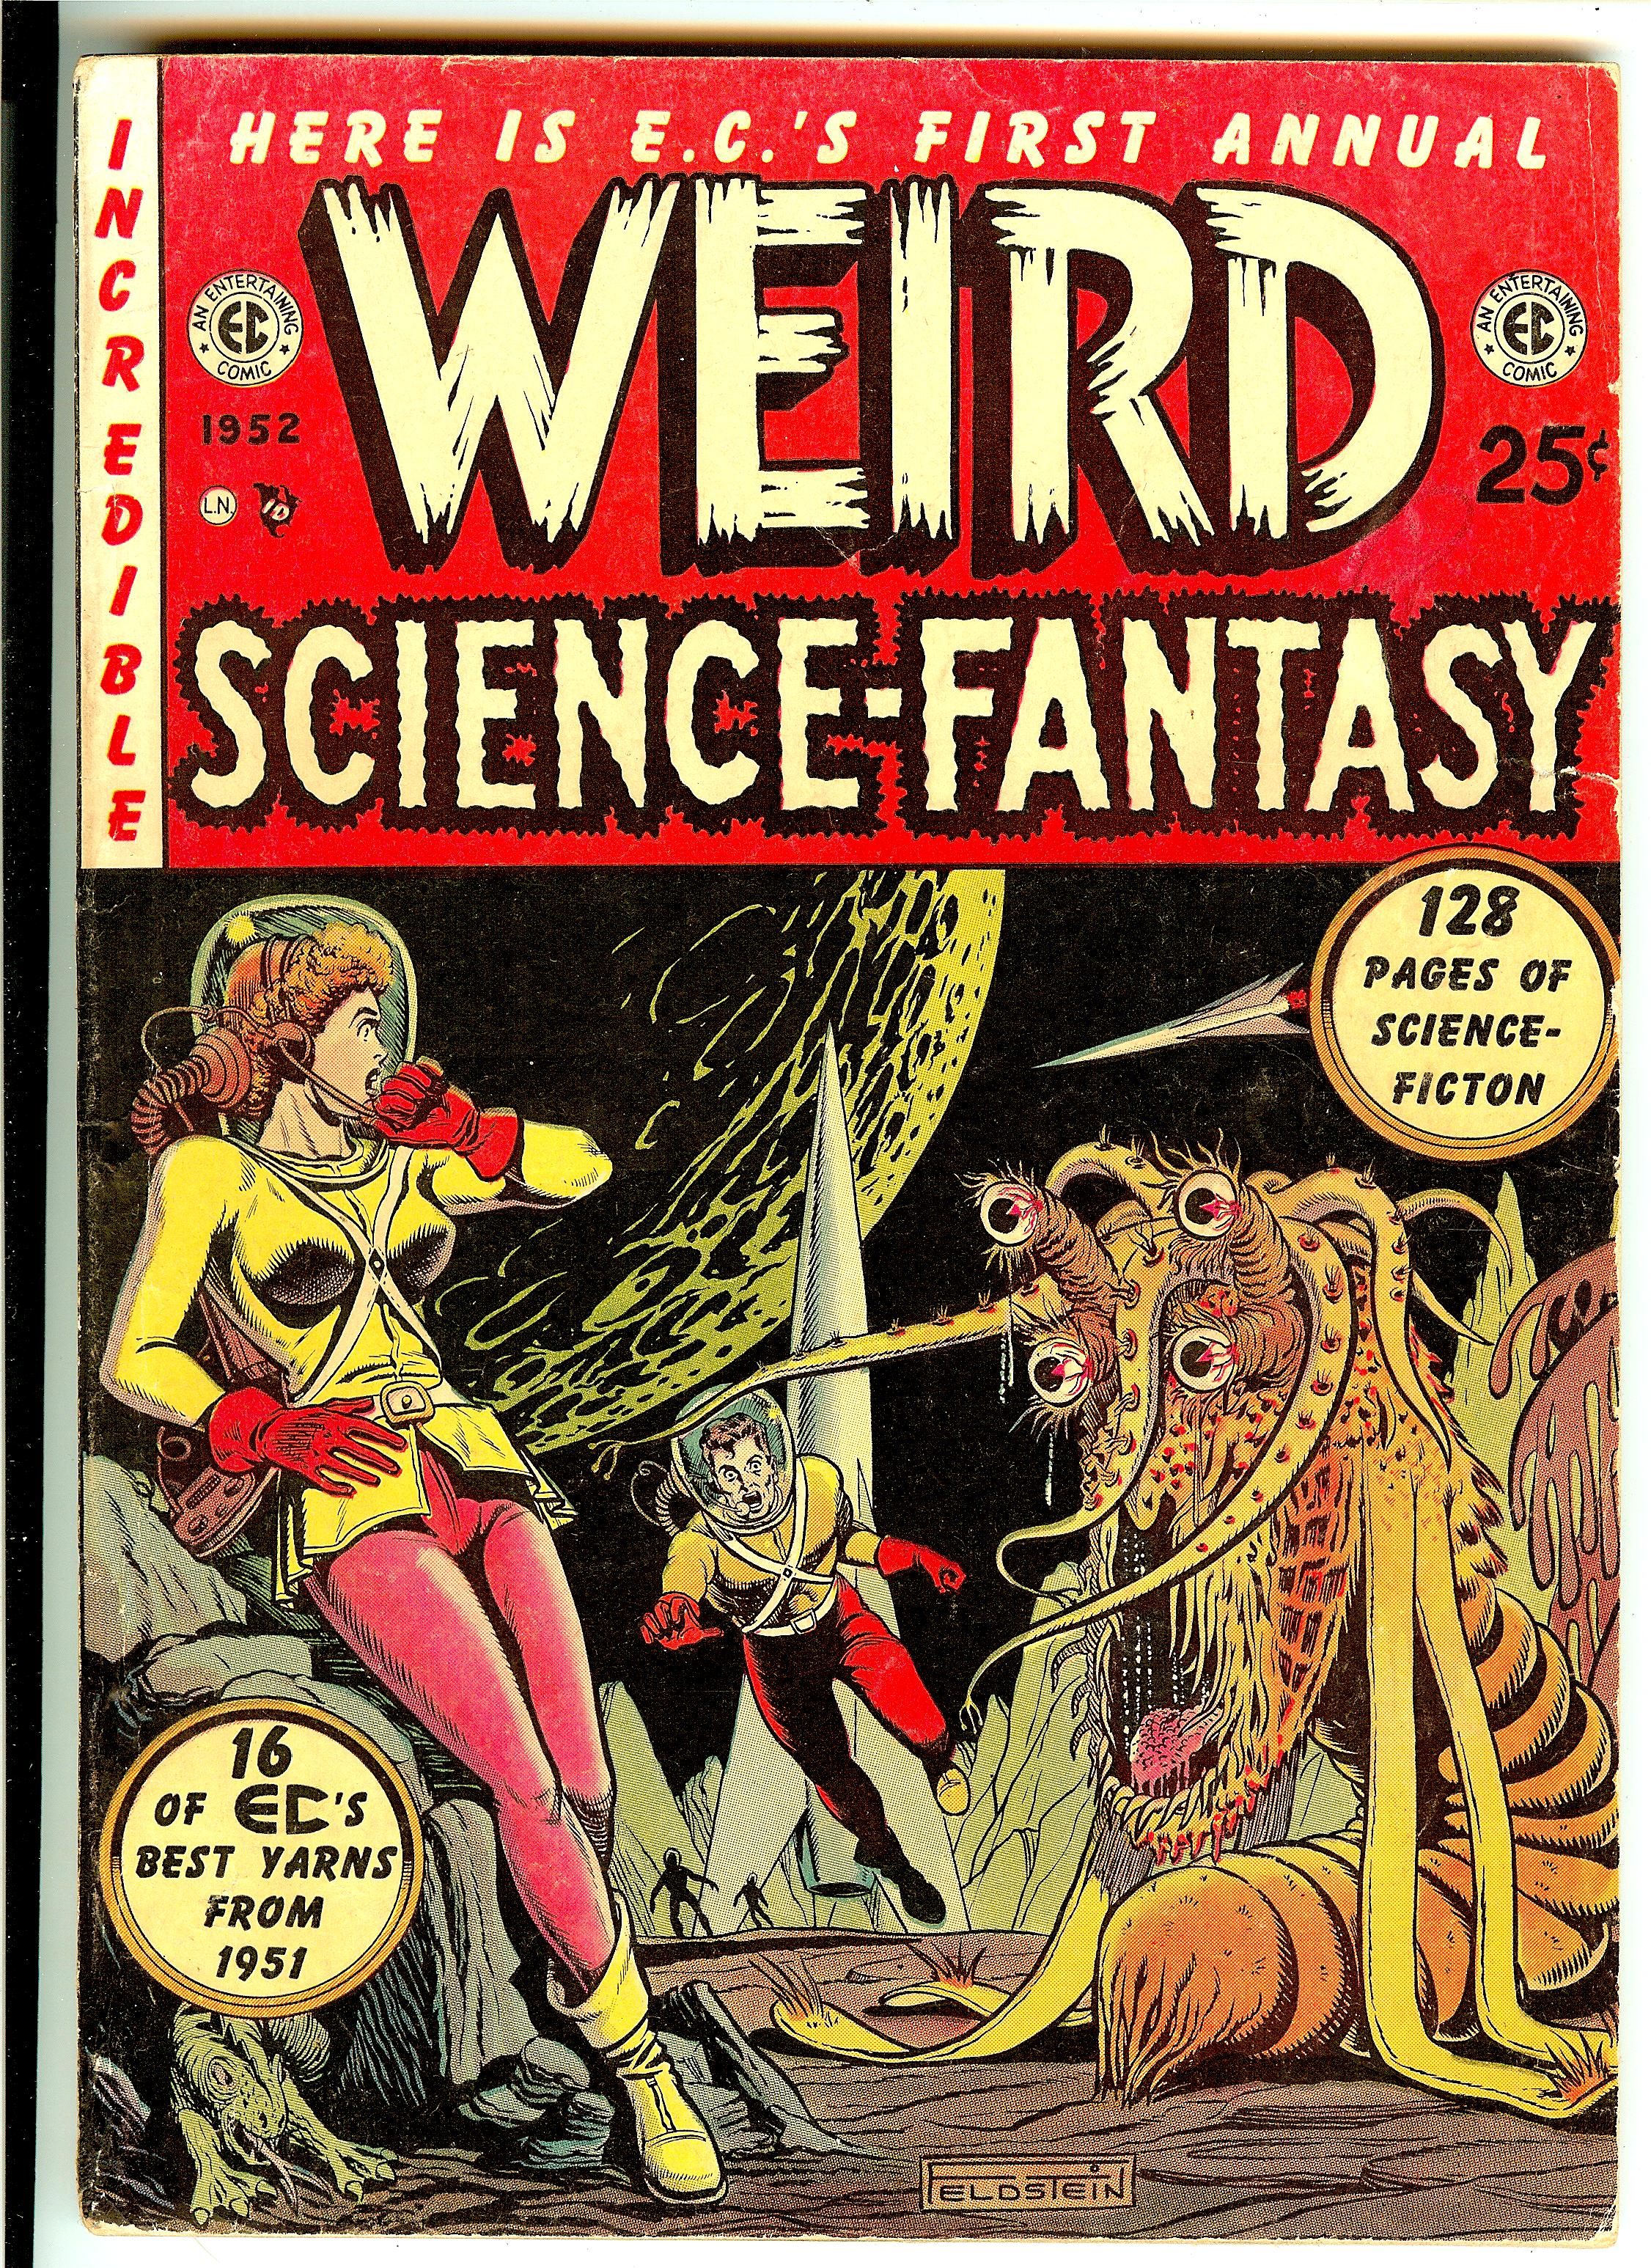 Couverture de Weird Science Fantasy Annual © 1950, EC Comics, William Gaines et Al Feldstein